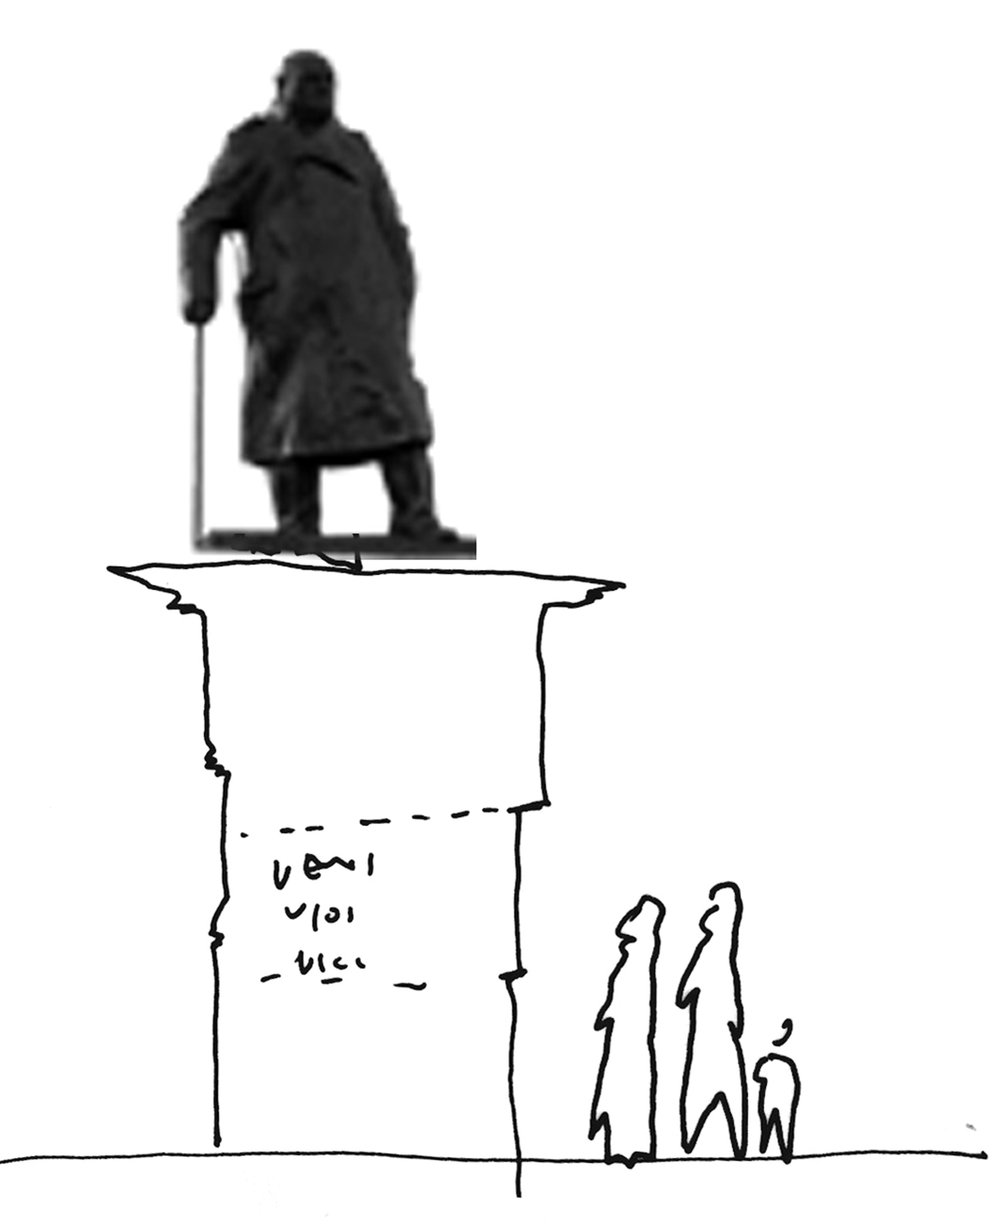 Parliament_Square_Traditional-Plinth-Sketch.jpg